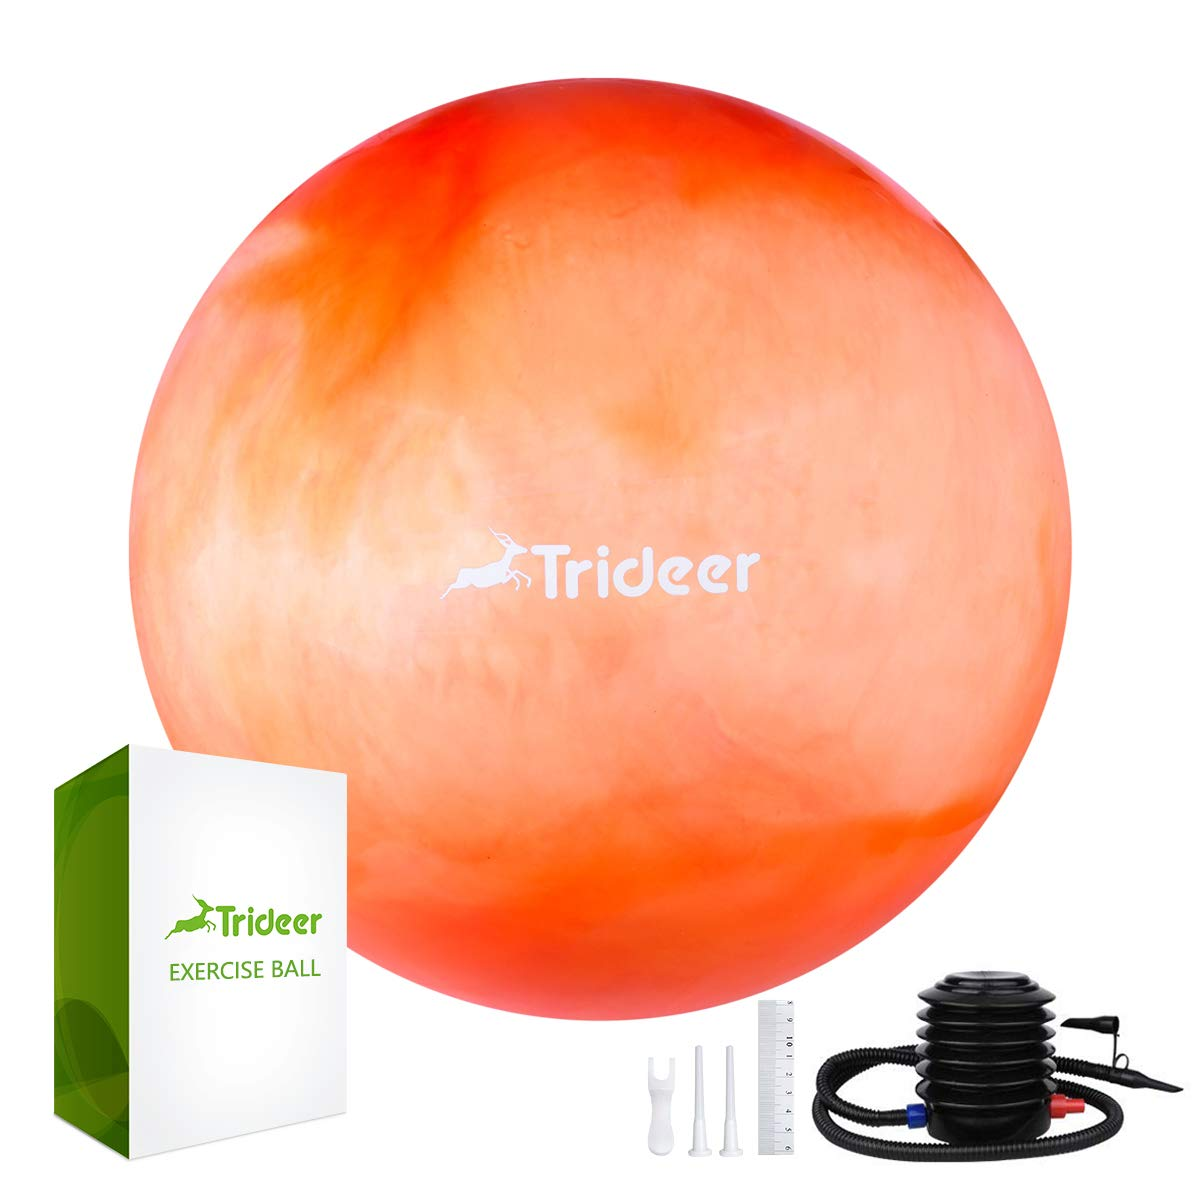 Trideer Exercise Ball (Multiple Color), Yoga Ball, Birthing Ball with Quick Pump, Anti-Burst & Extra Thick, Heavy Duty Ball Chair, Stability Ball Supports 2200lbs (B#Orange&White, L (58-65cm))